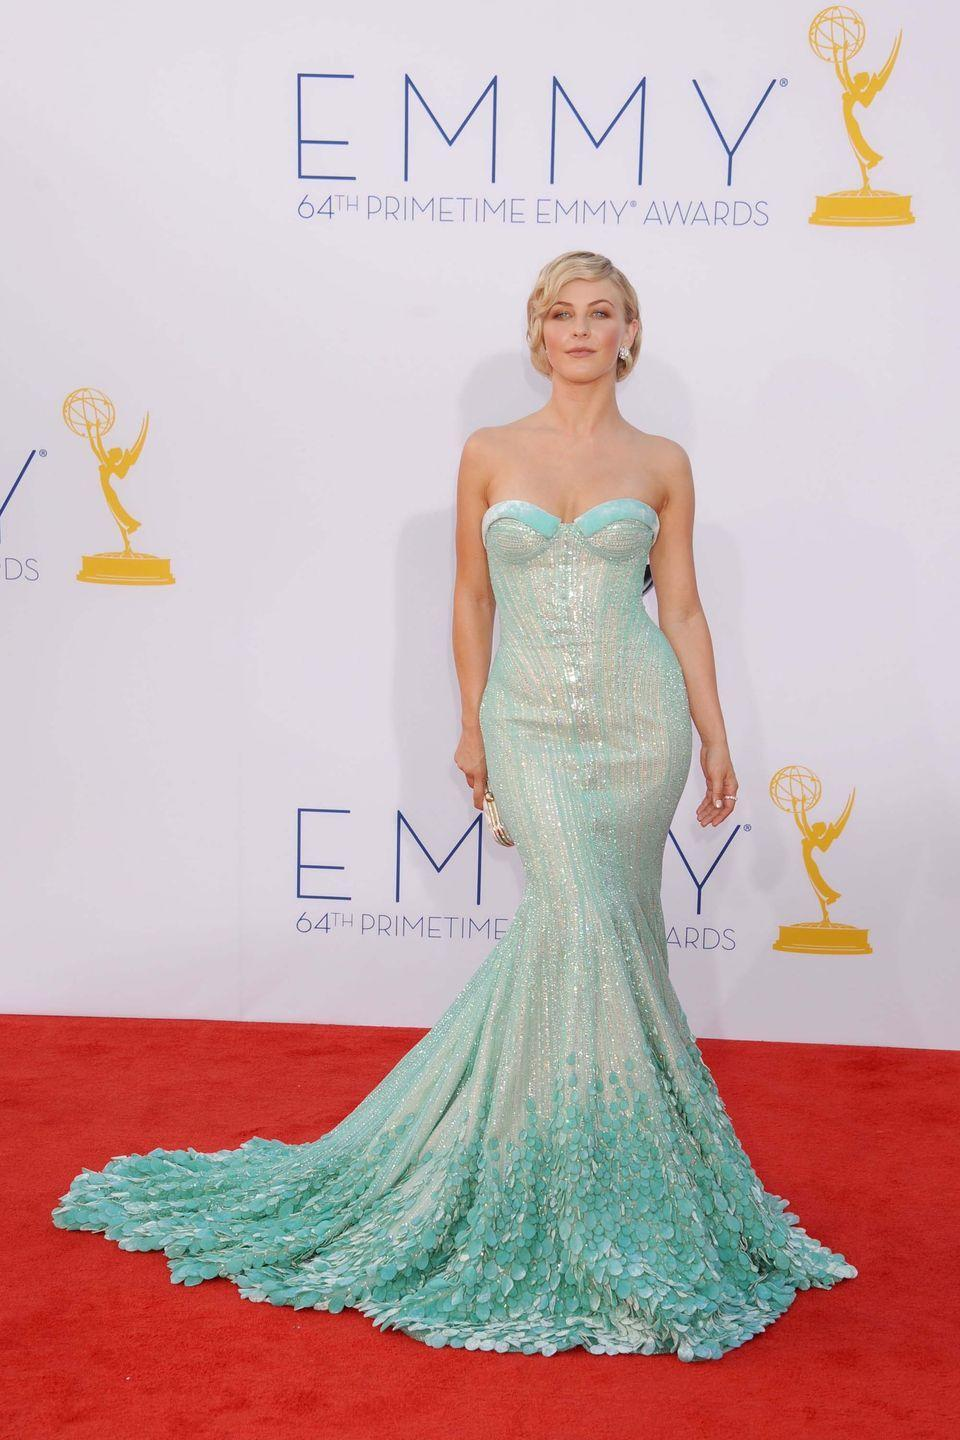 <p>While <em>Dancing with the Stars</em>' Julianne Hough might have been going for more of a Grace Kelly vibe at the 2012 Emmy Awards, this sparkly green mermaid gown by Georges Hobeika makes us think of Ariel.</p>